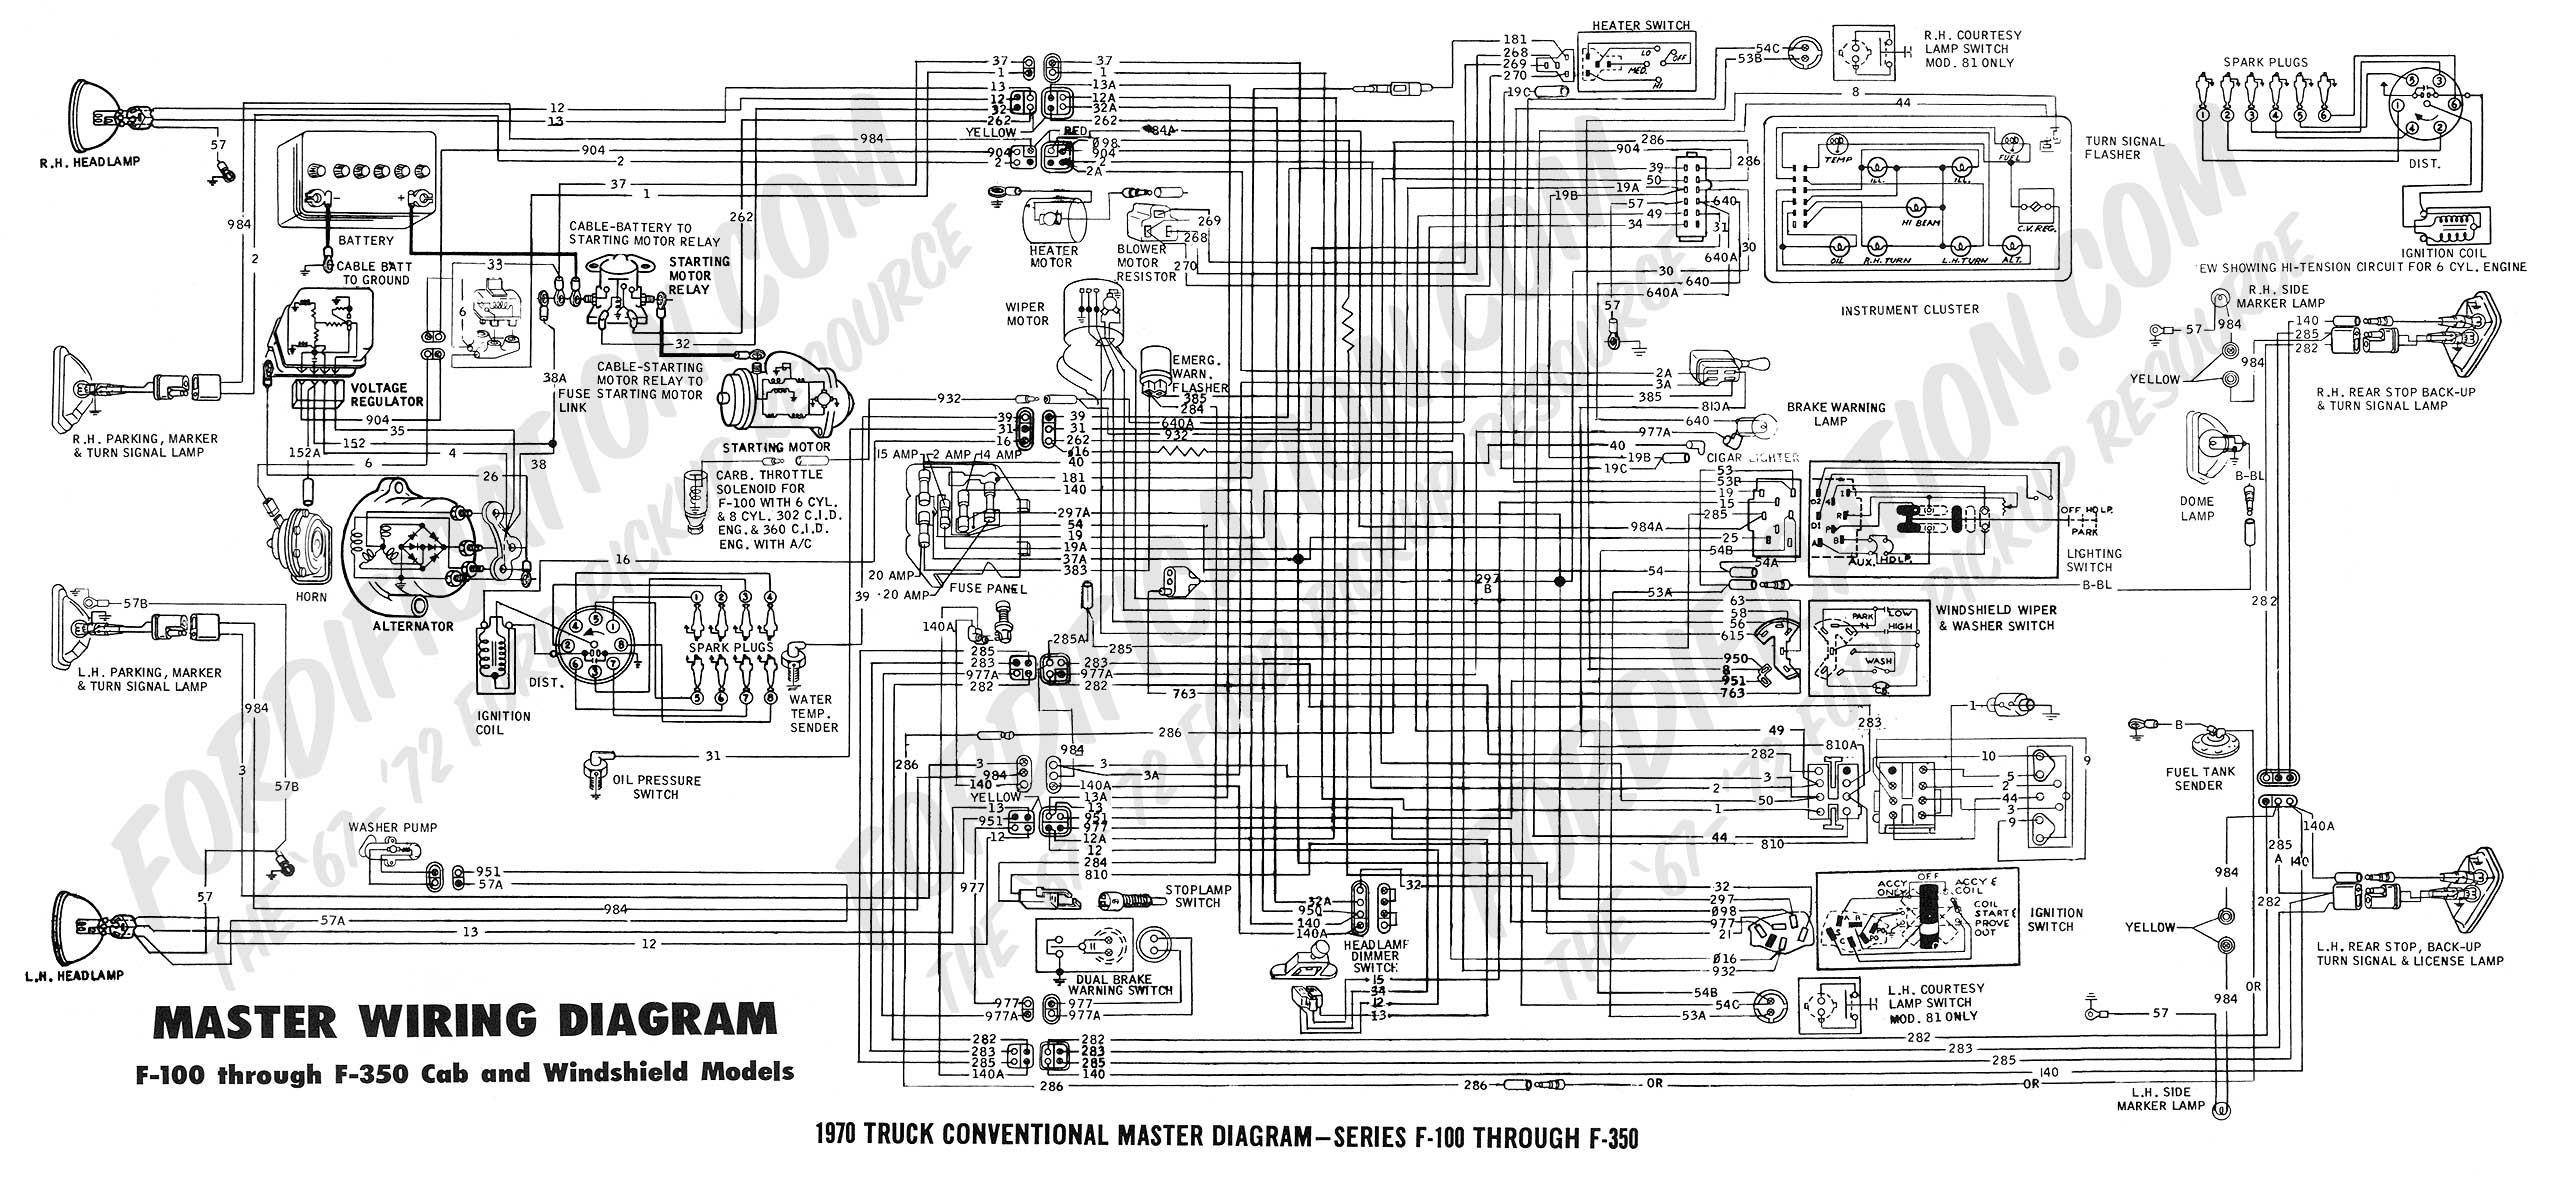 ford f 350 wiring diagram wiring data rh unroutine co Ford Truck Wiring Diagrams 1969 F100 Wiring Harness